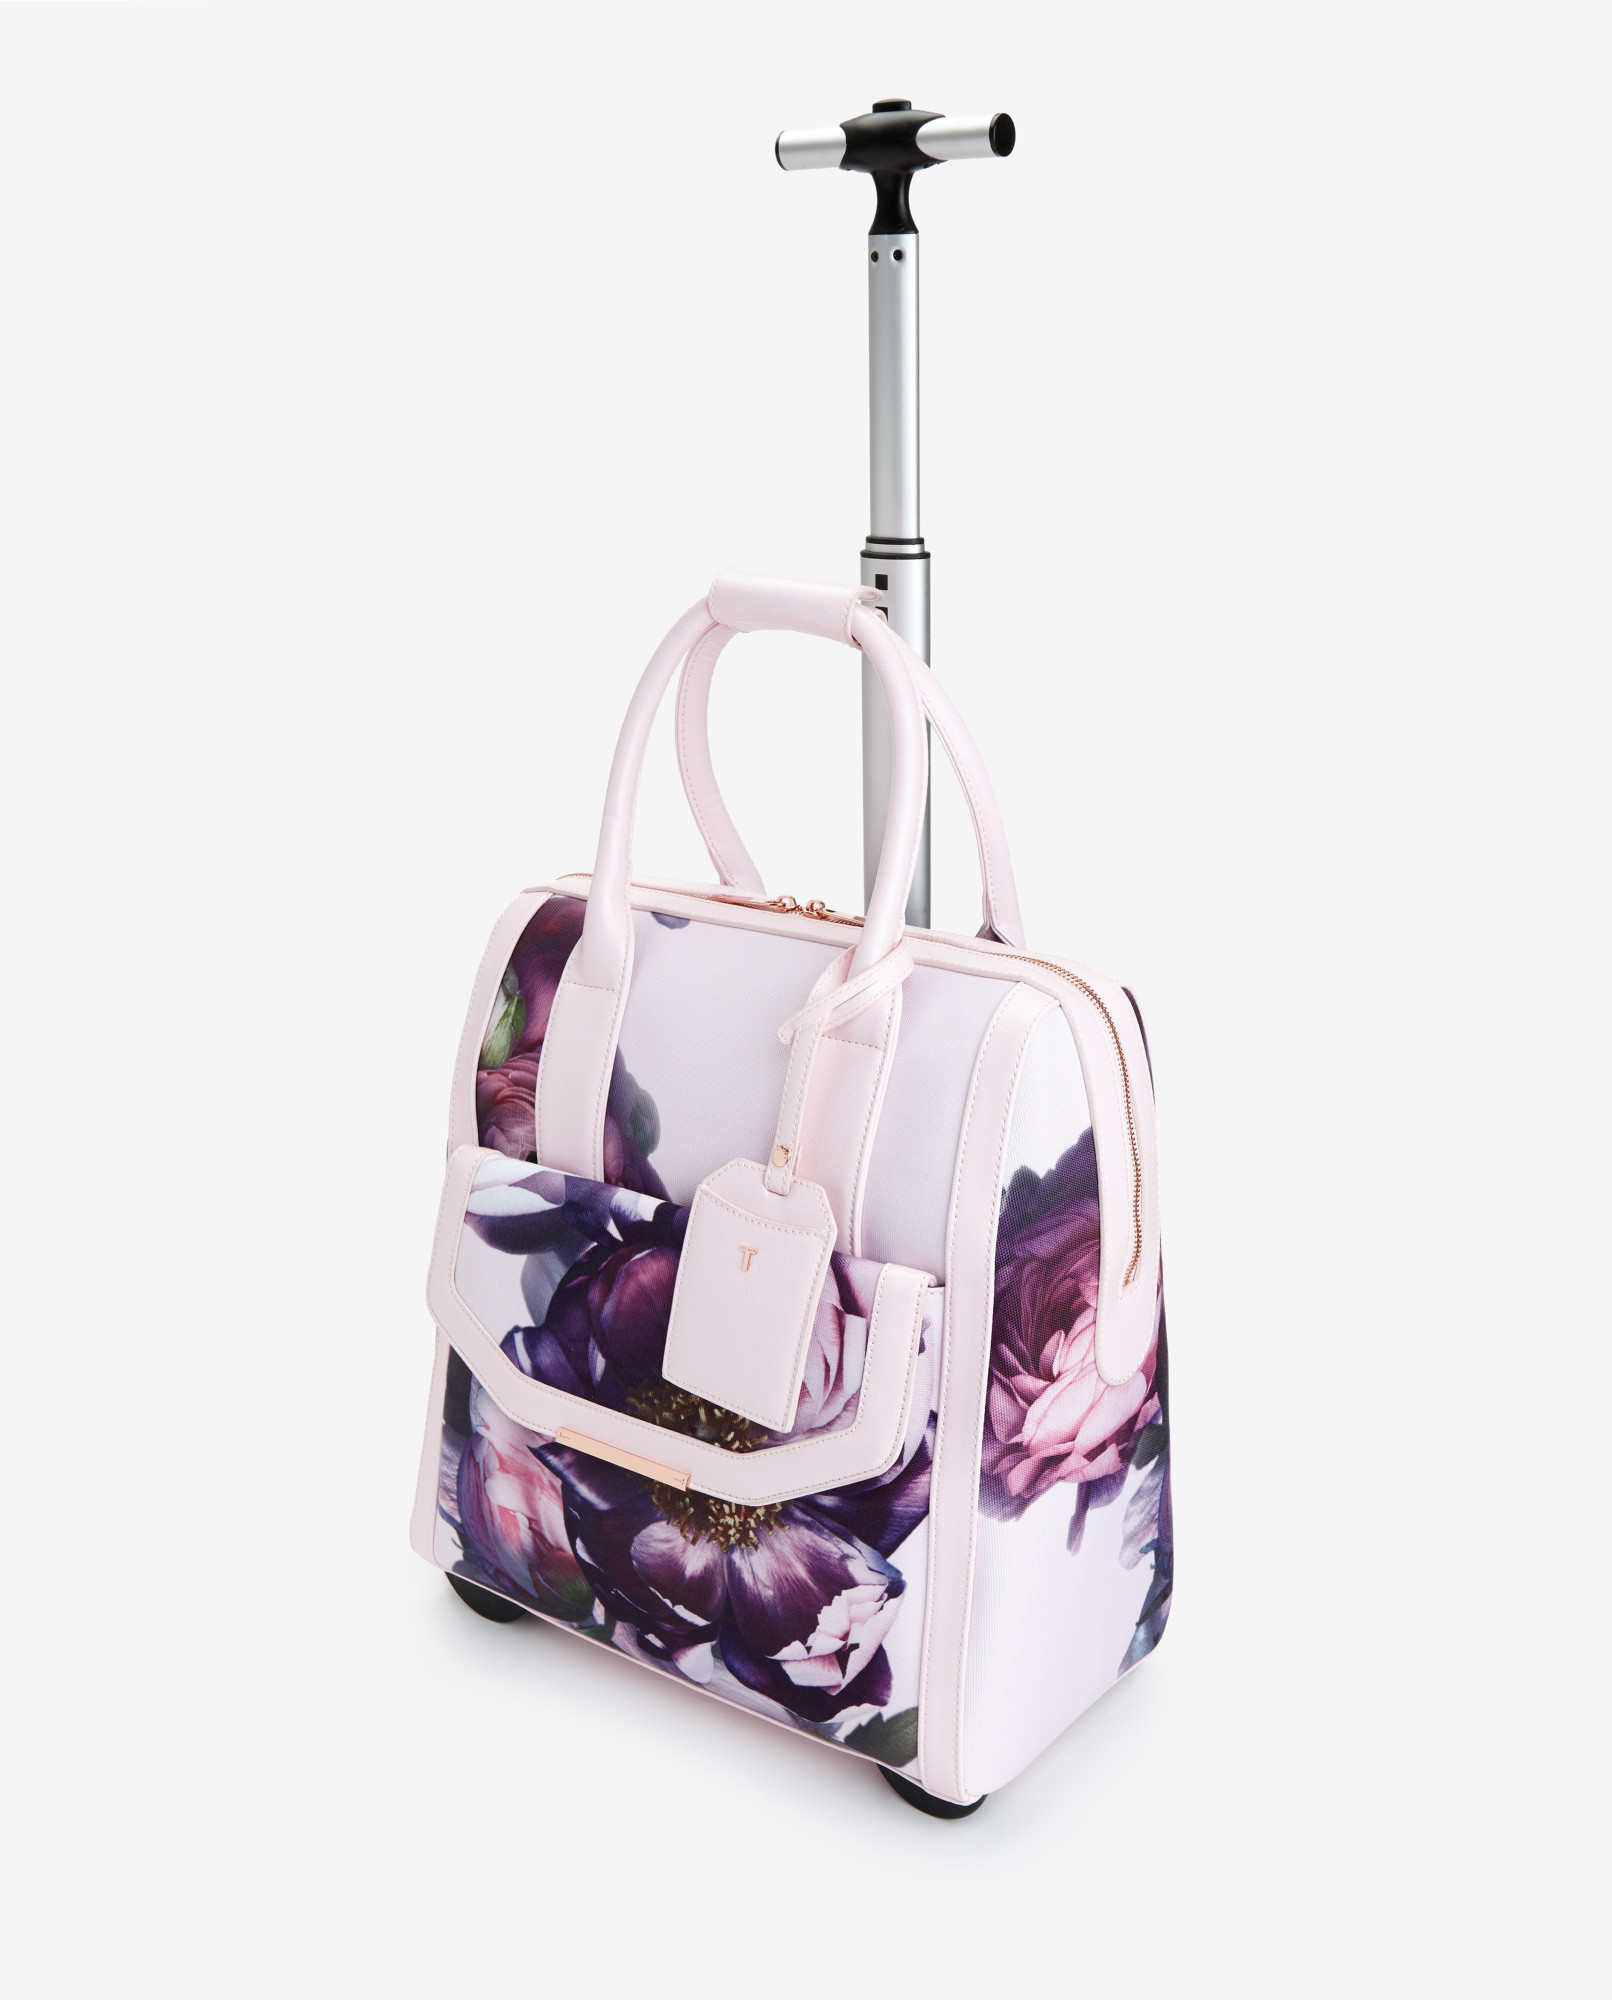 648969e7b7eb1 Ted Baker Sunlit Floral Travel Bag in Pink - Lyst